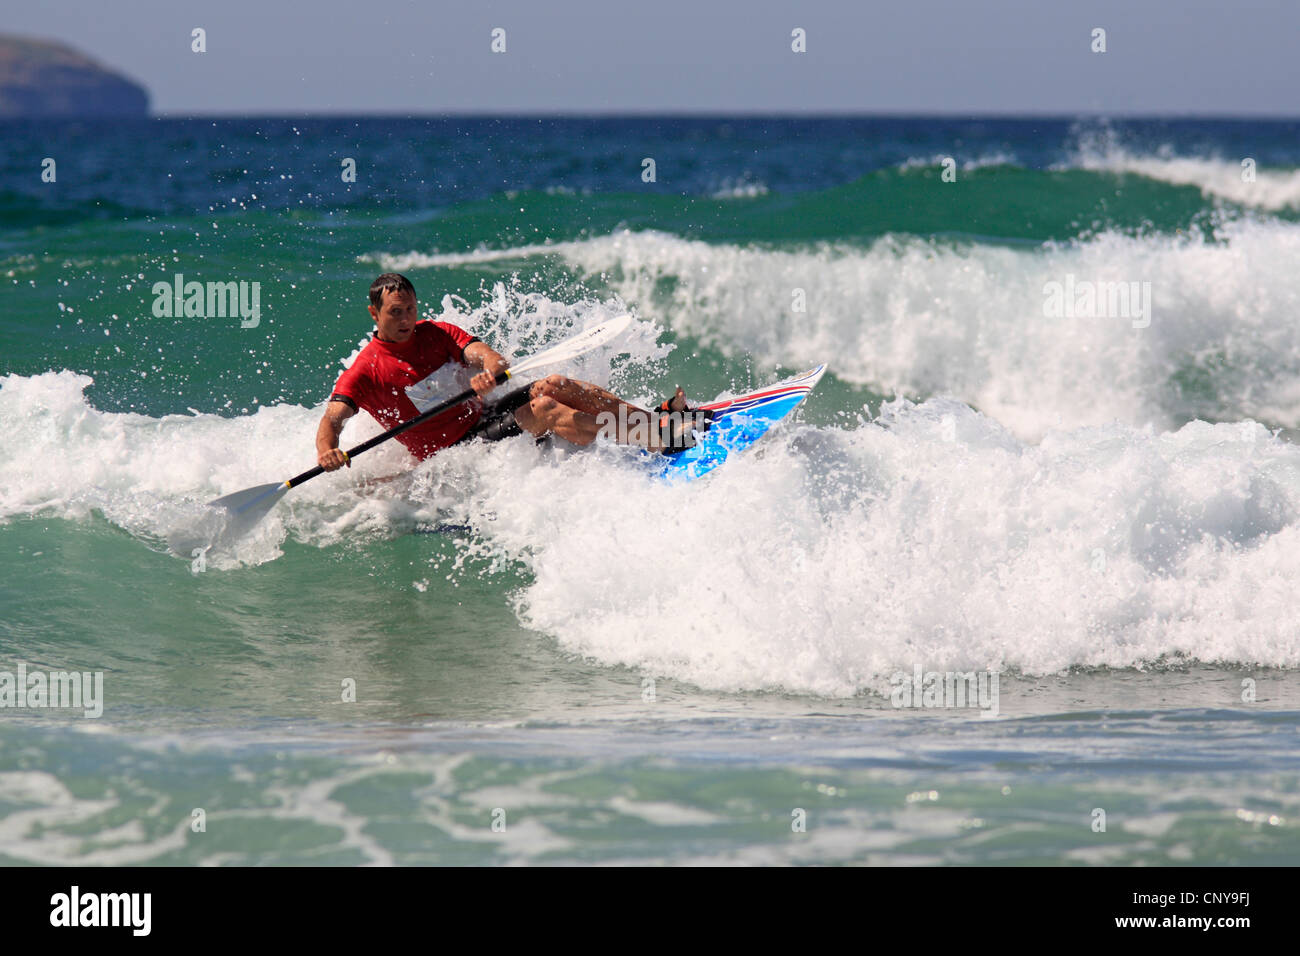 World Champion Waveski Surfer Rees Duncan, competing at the 2009 World Titles at Emerald Beach, Coffs Harbour, NSW, - Stock Image